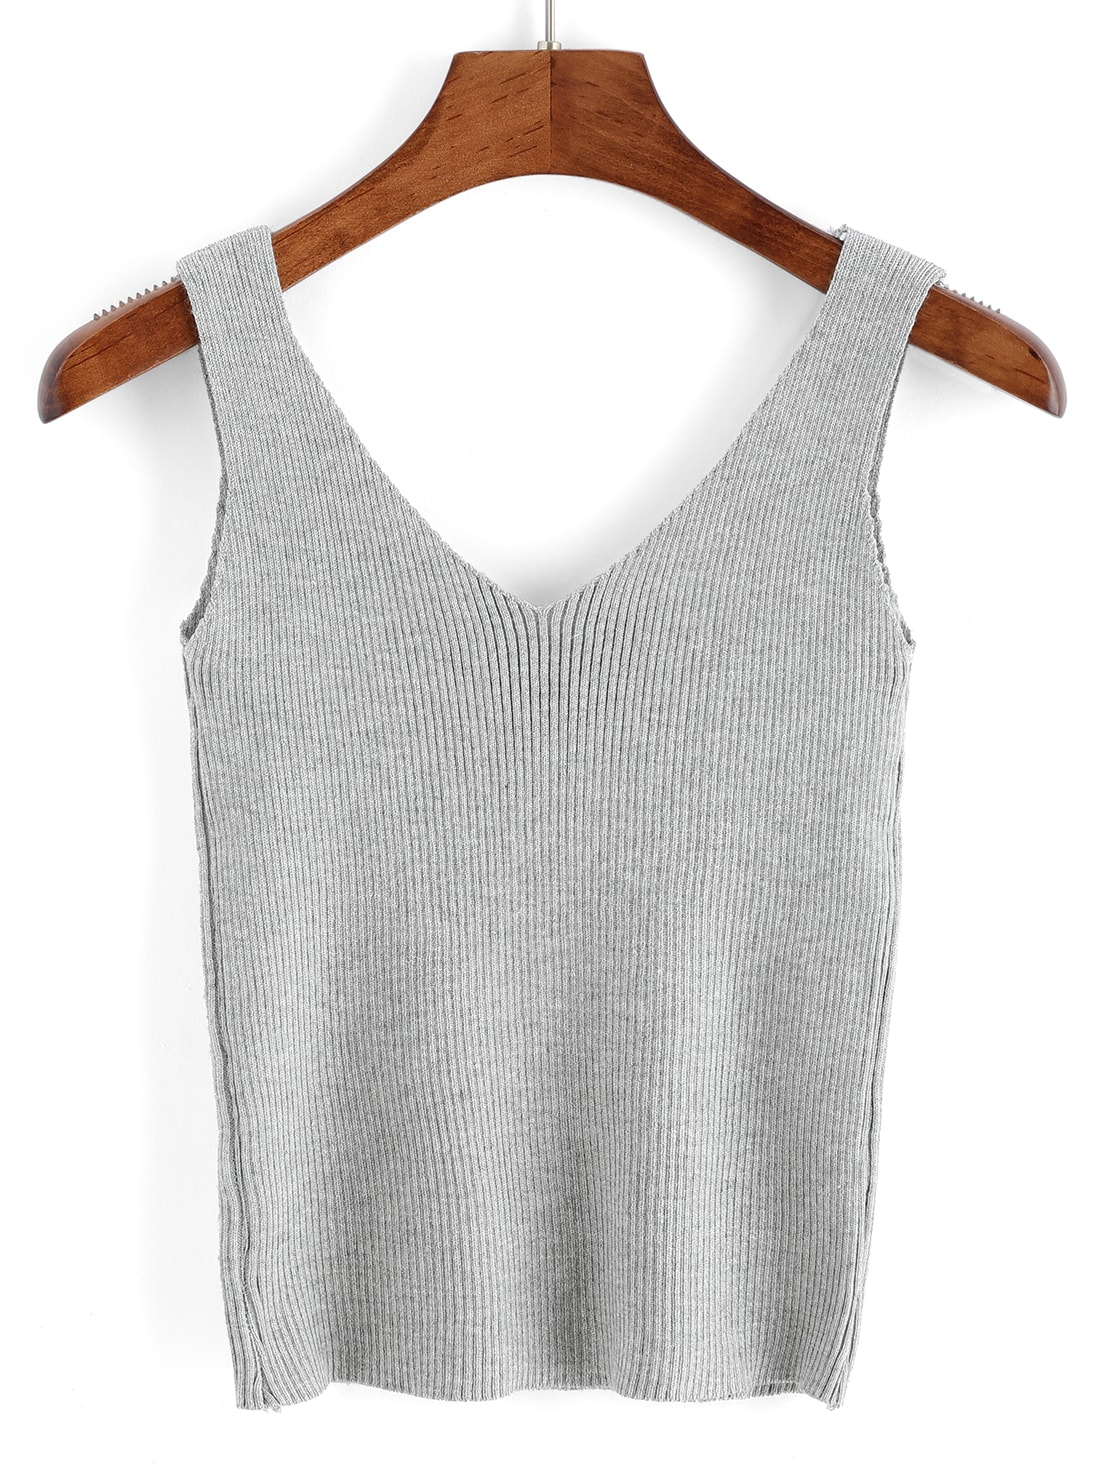 V Neck Ribbed Sweater Tank Top -SheIn(Sheinside)